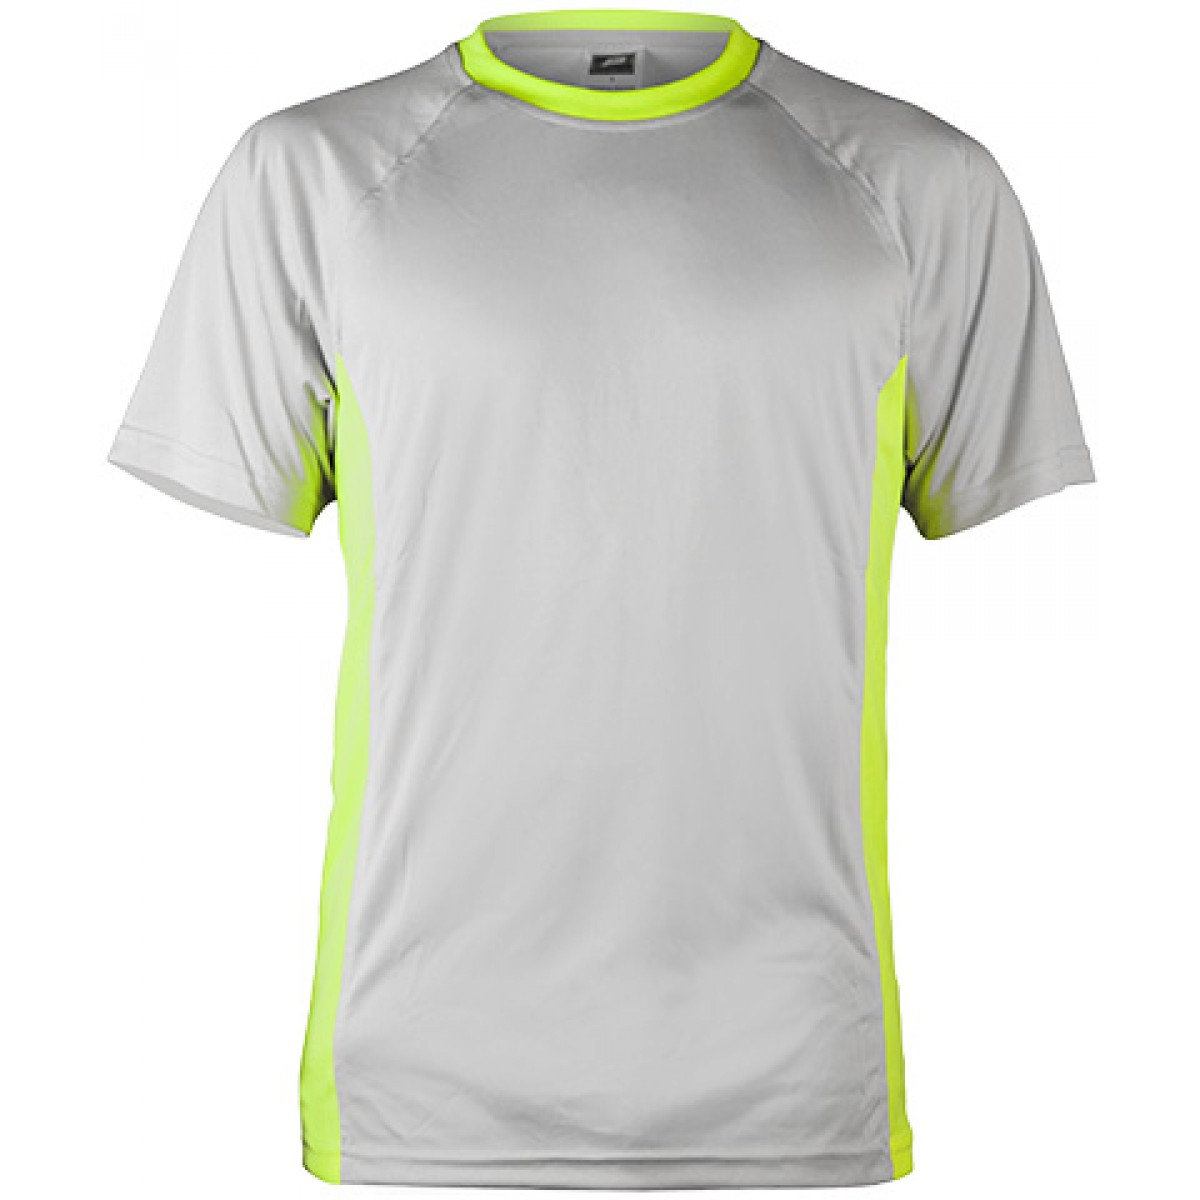 Short Sleeve Performance Fit with Flat-back Mesh Side Insert-Gray/Green-YM